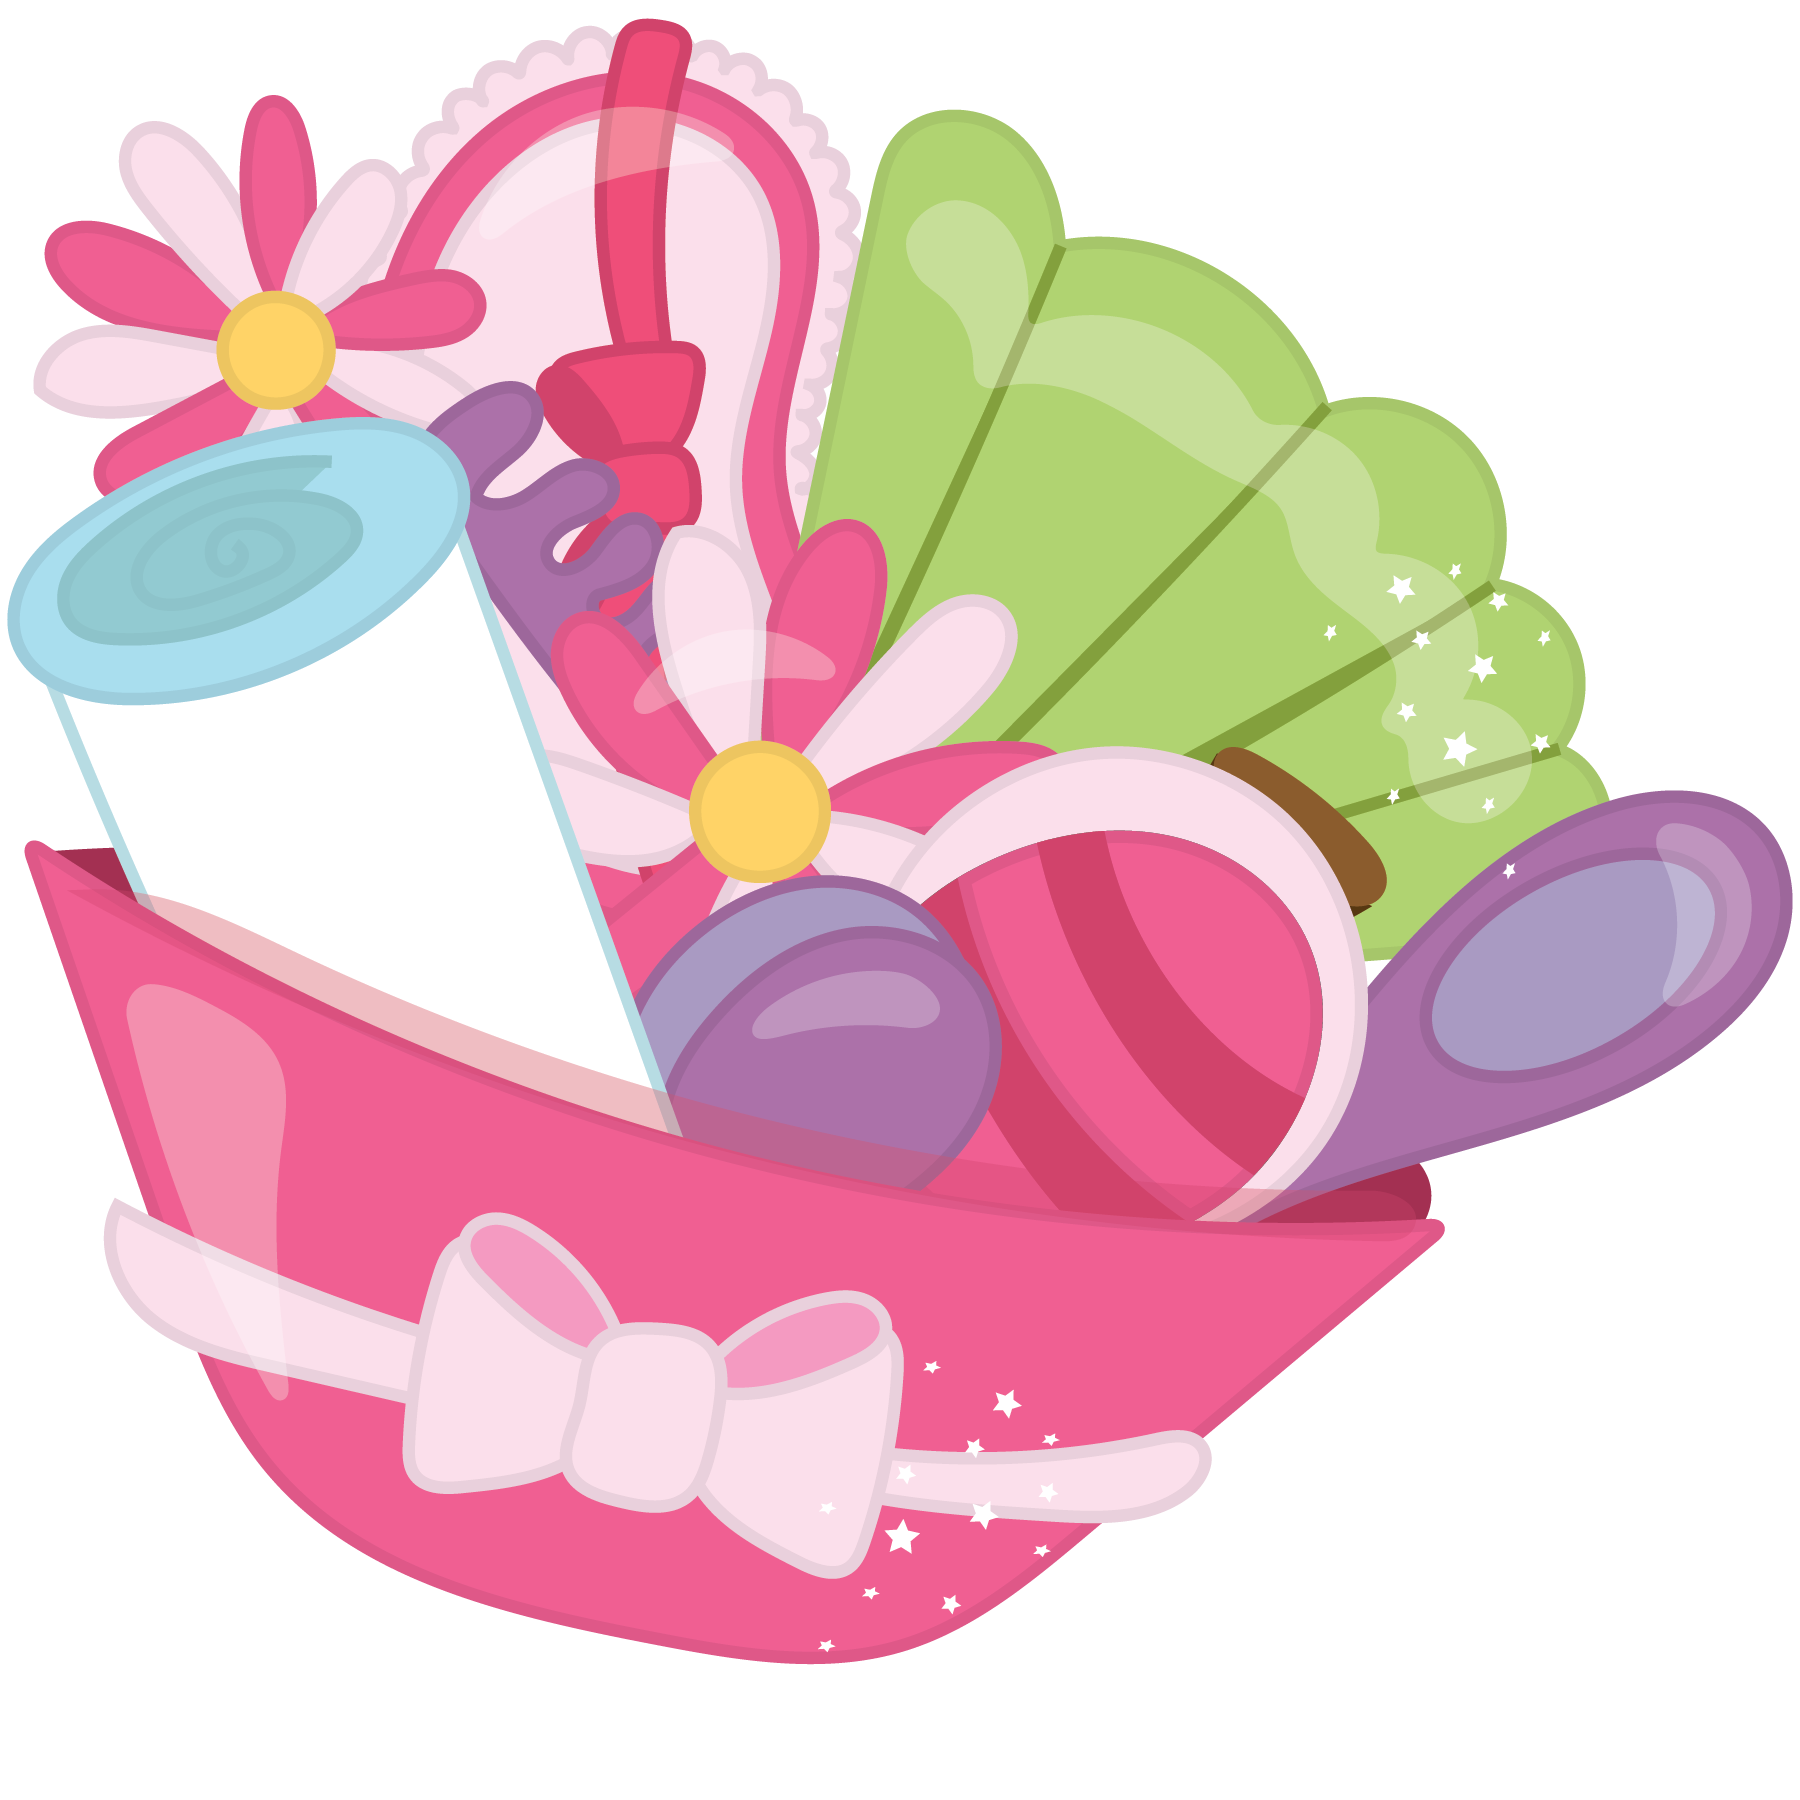 Spa party png. Collection of clipart